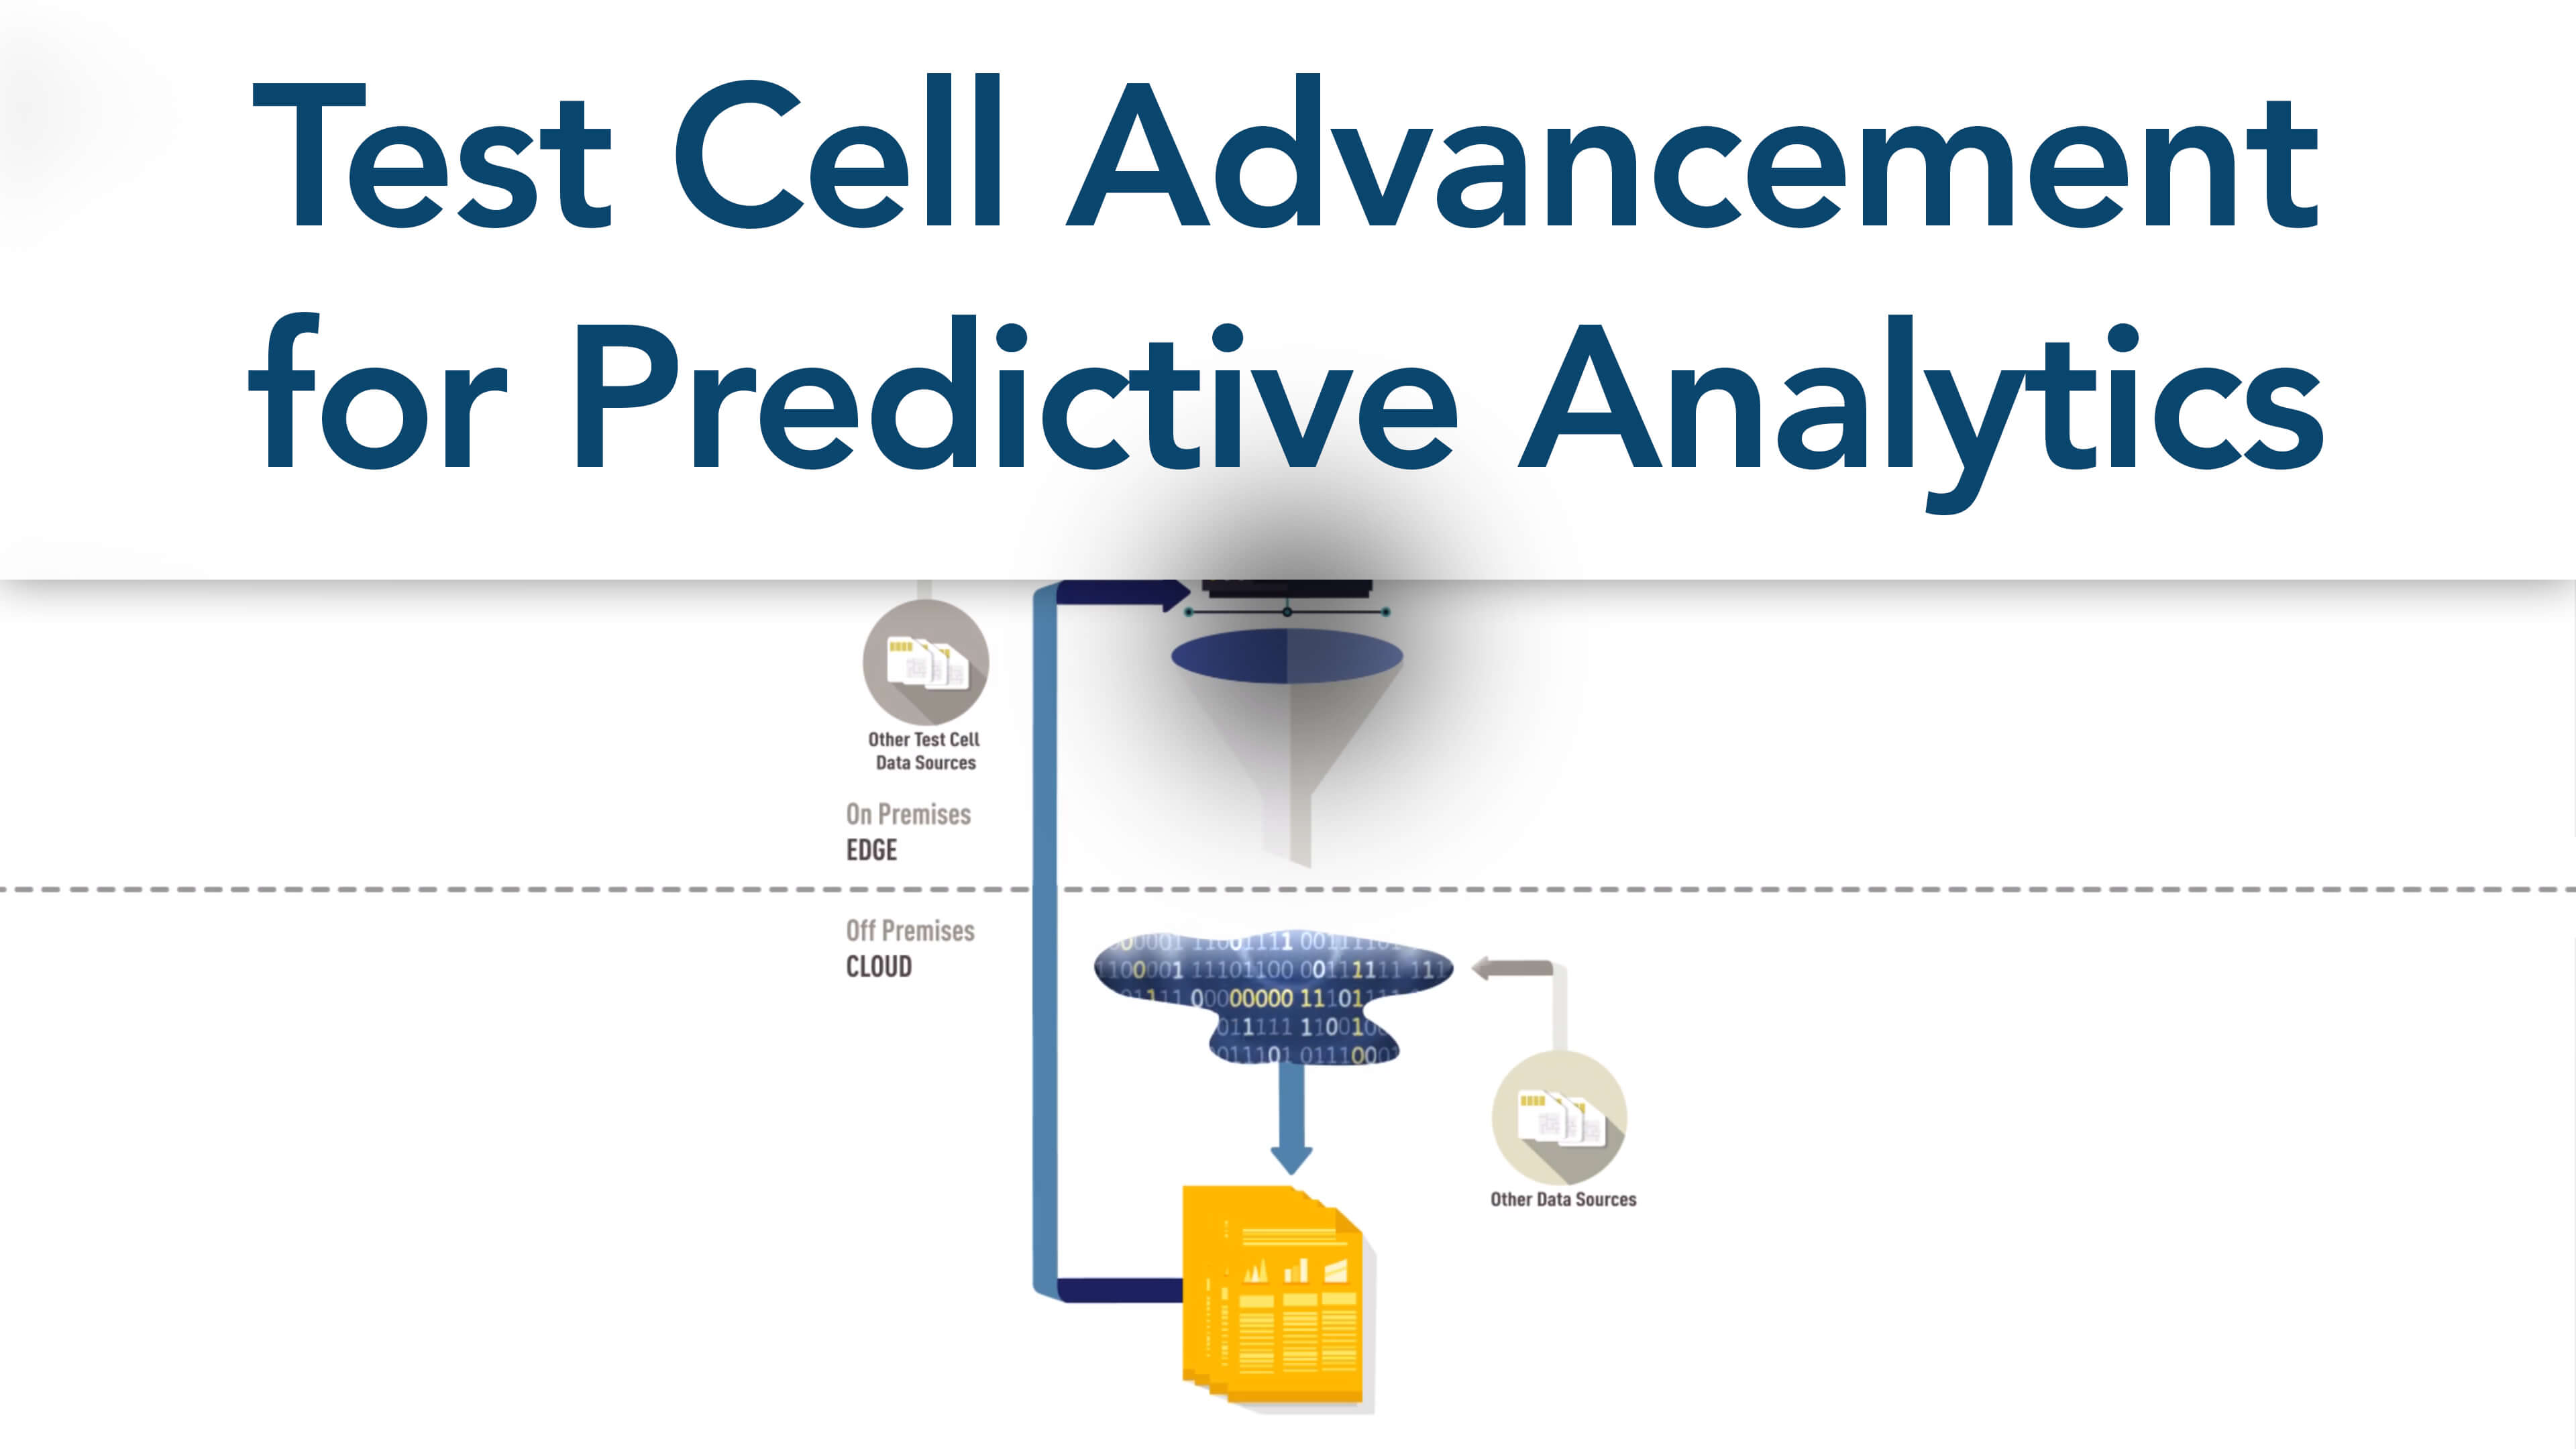 Test Cell Advancement for Predictive Analytics